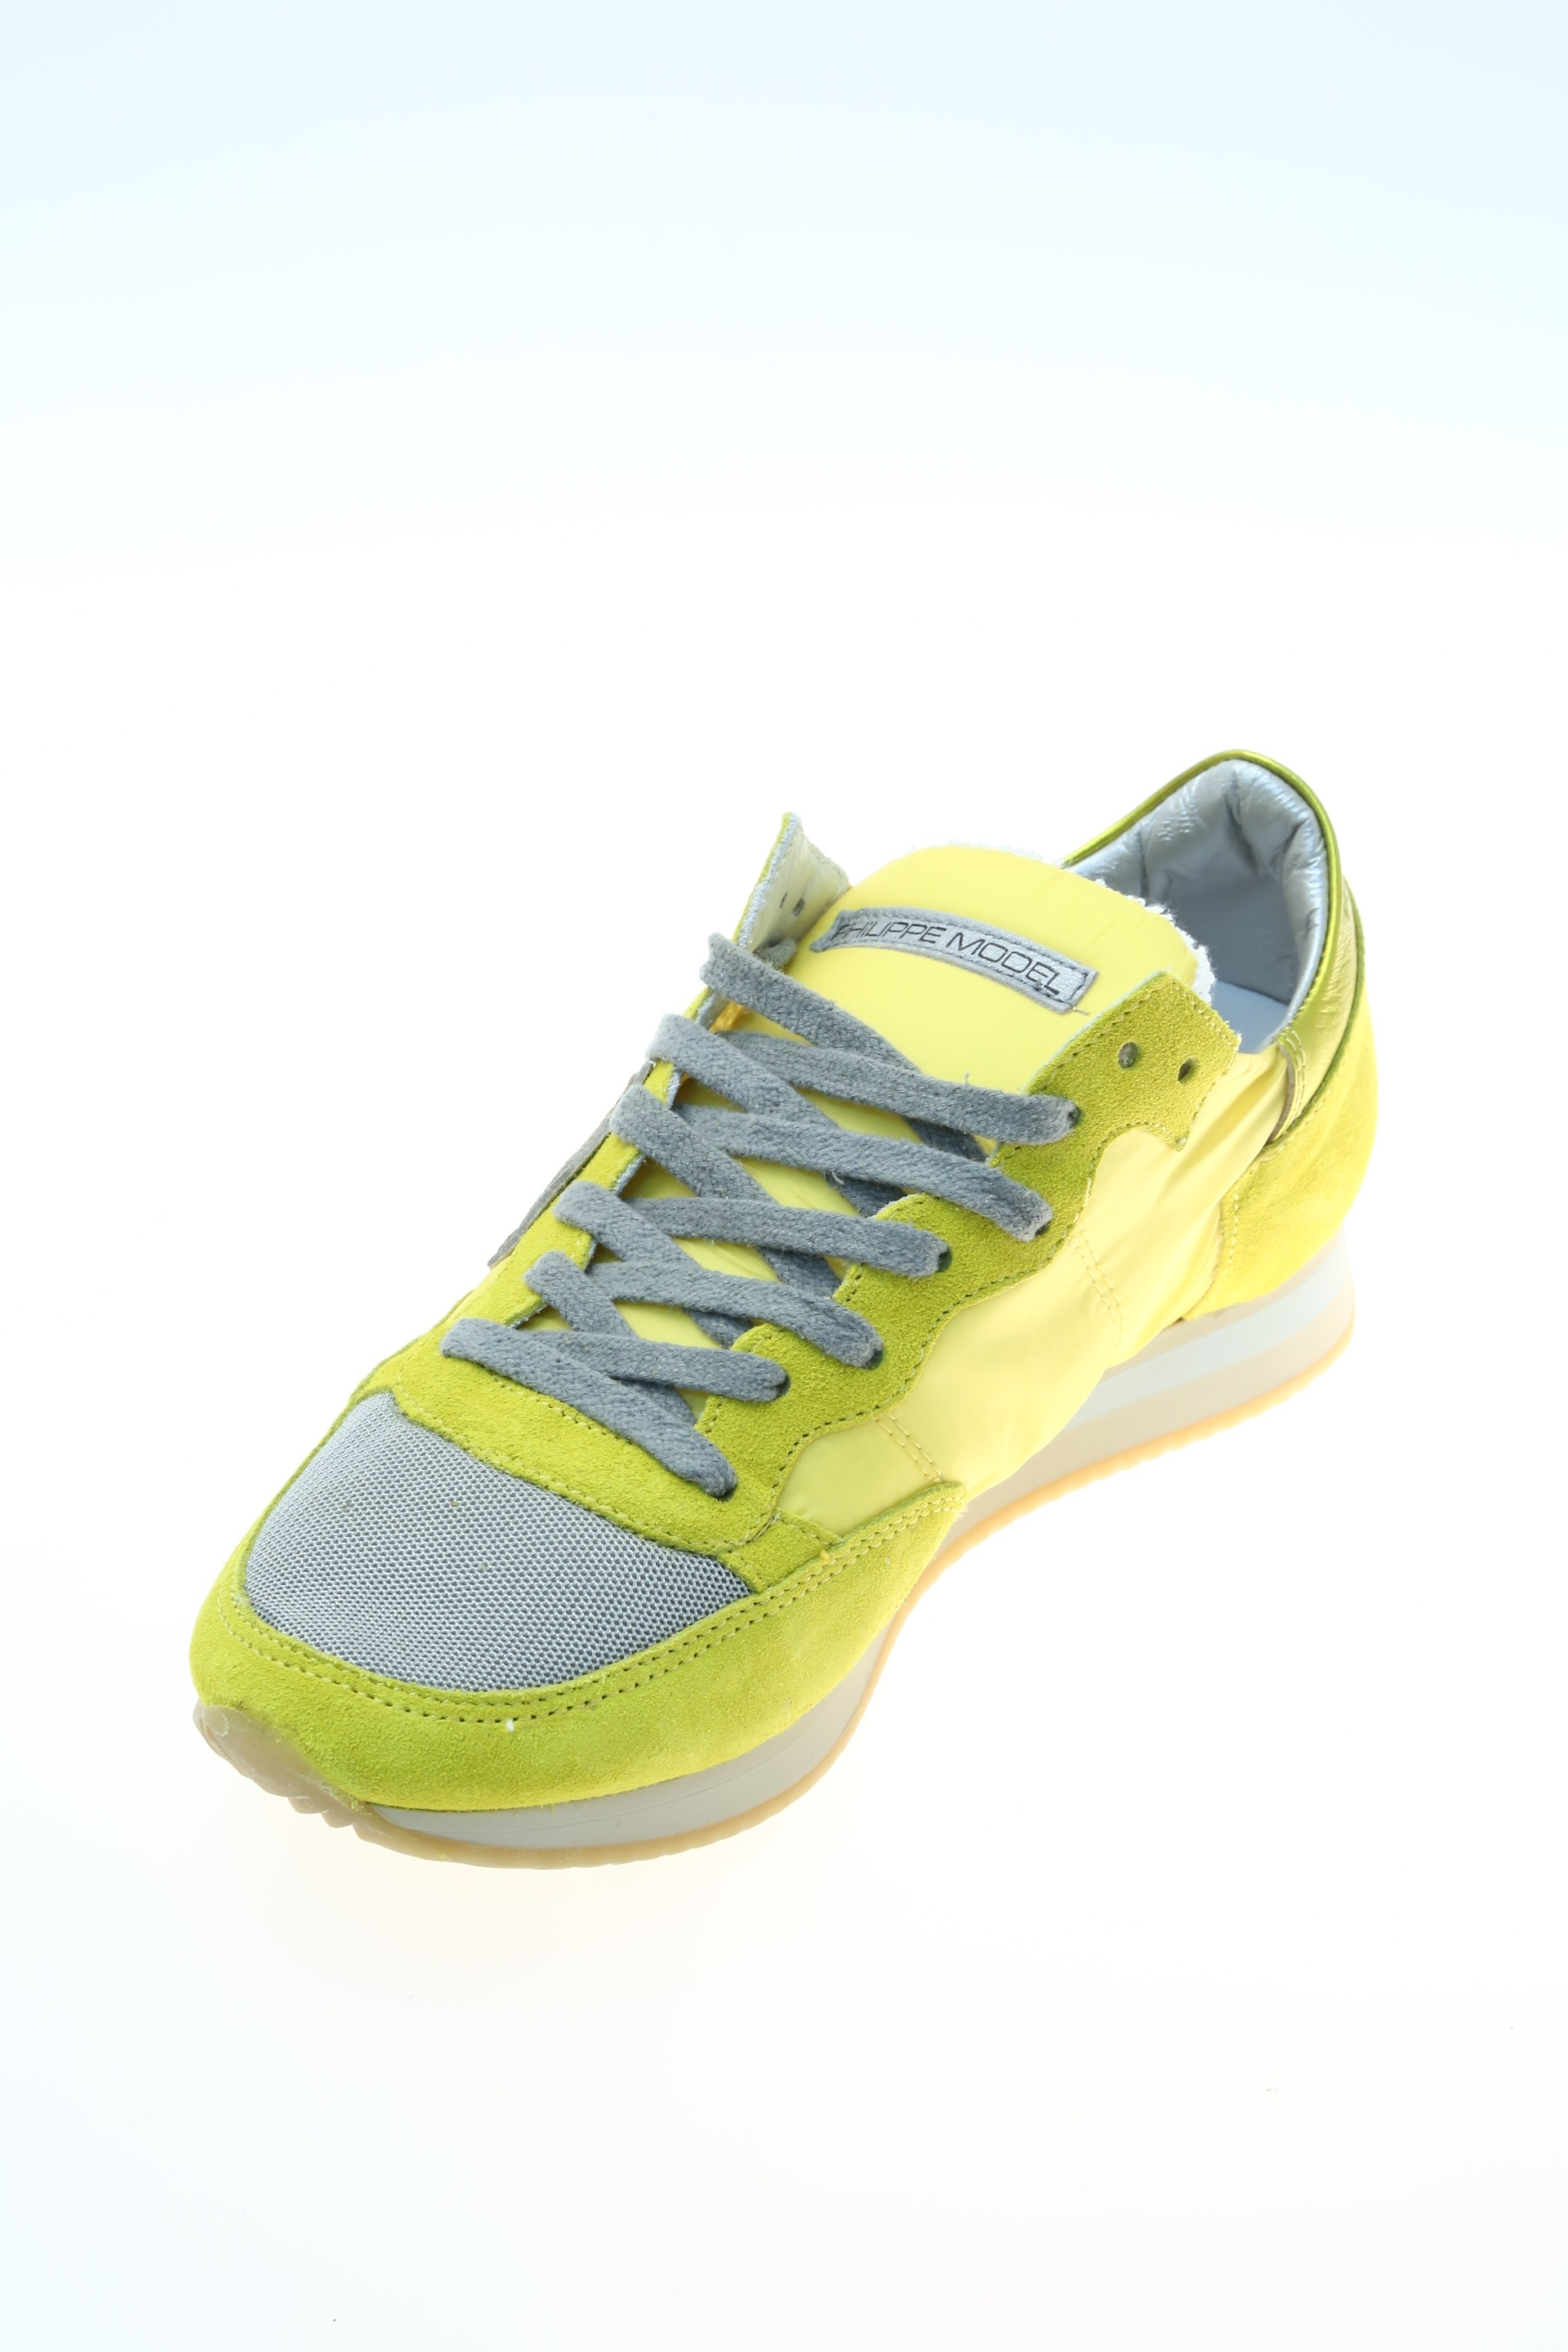 rubber yellow sneaker philippe model. Black Bedroom Furniture Sets. Home Design Ideas